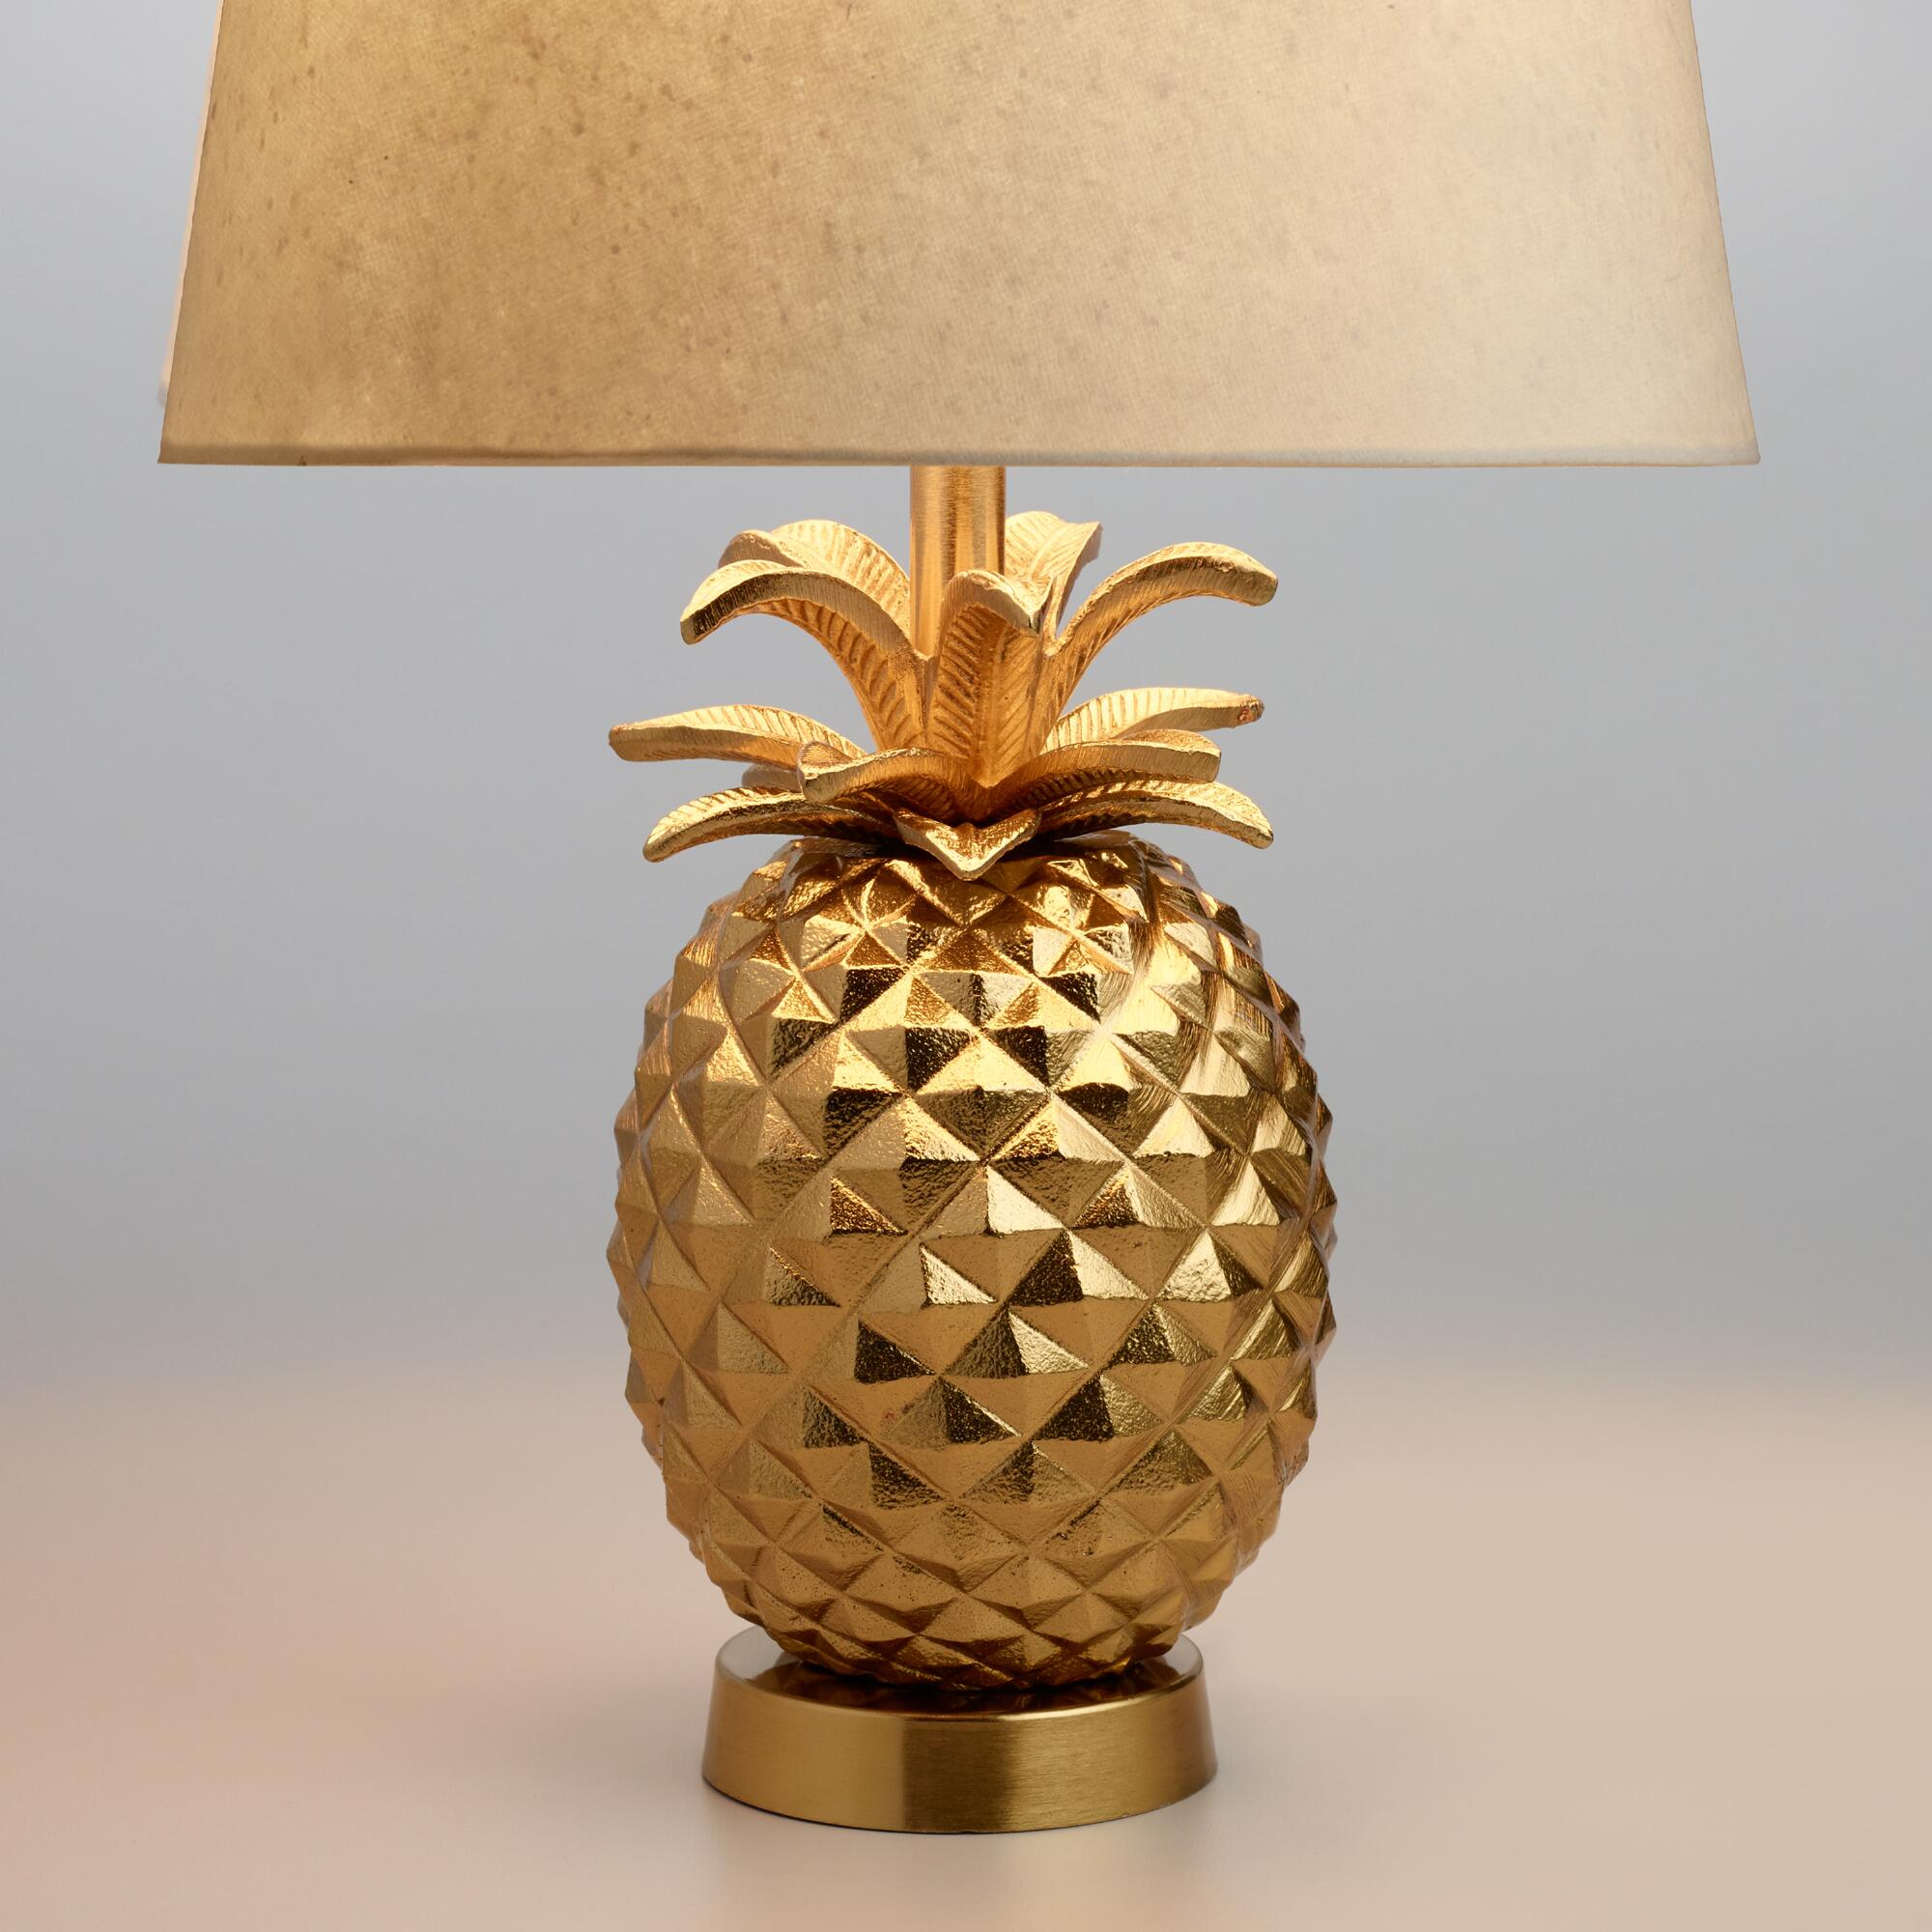 accent lighting unique table lamps world market iipsrv fcgi uplight brass pineapple lamp base outdoor bbq grill garden furniture covers inexpensive home decor reclining patio